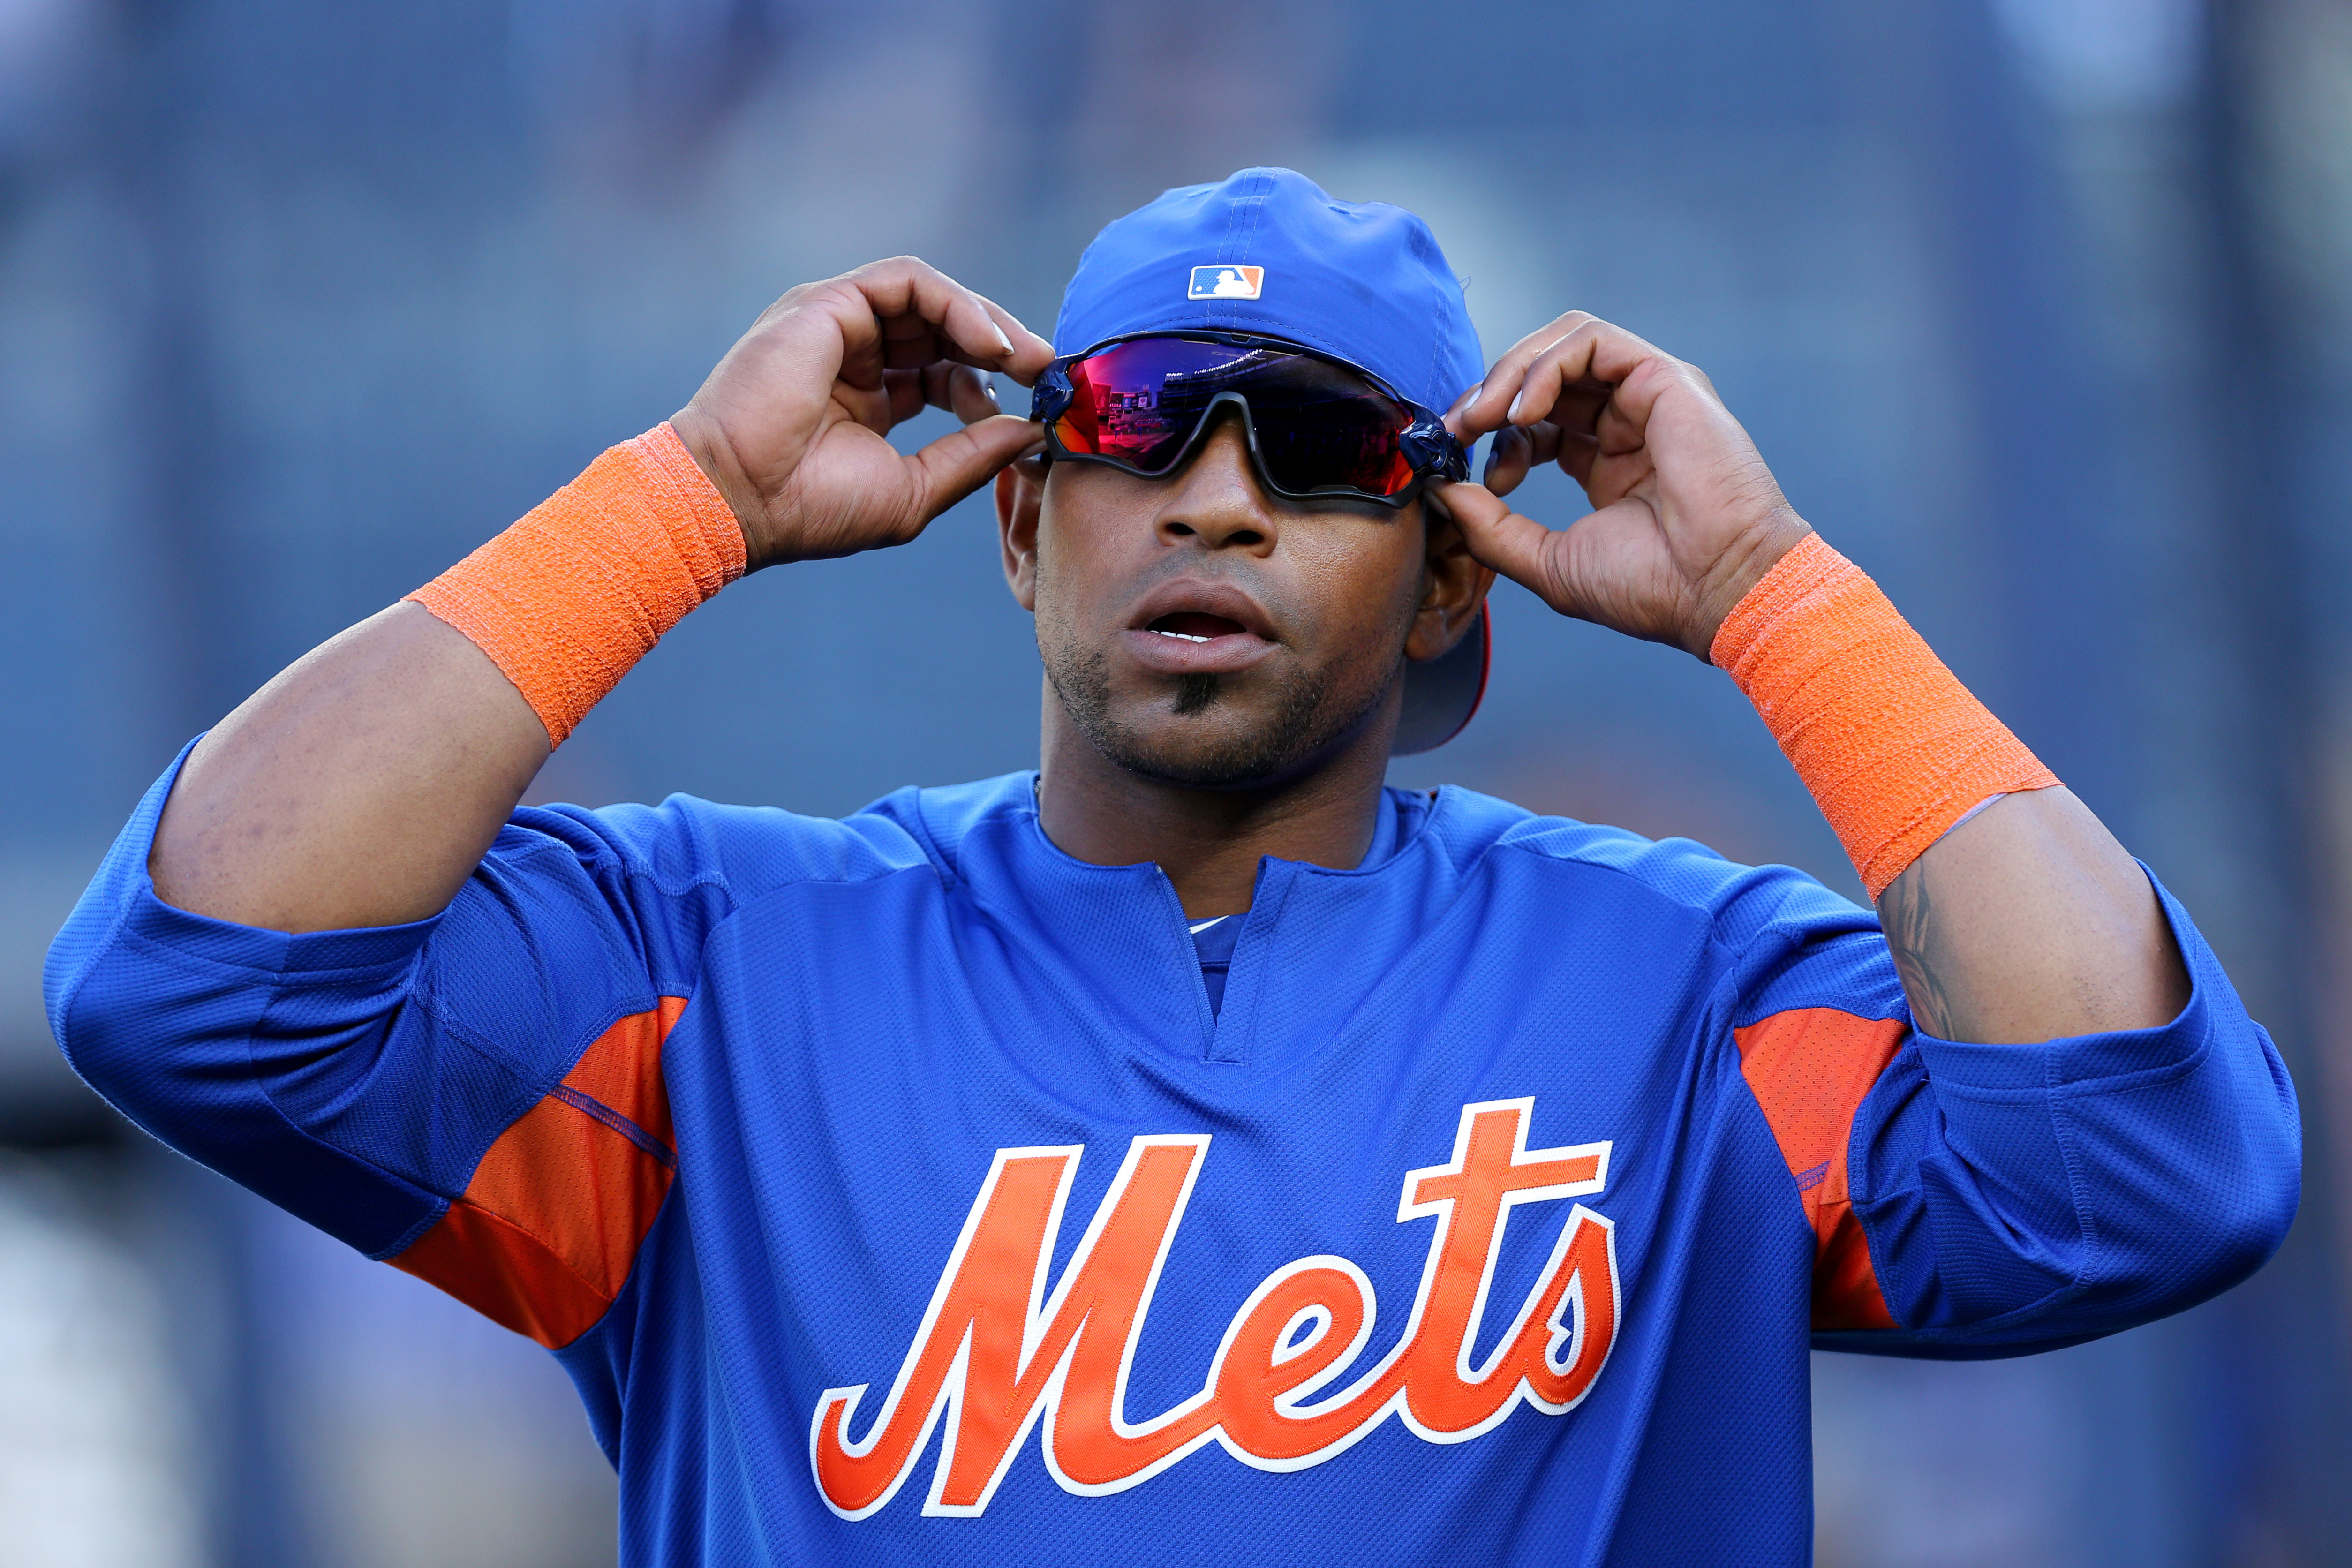 outlet store 0be90 f02ed Yoenis Cespedes homers in return from DL, later says he may ...